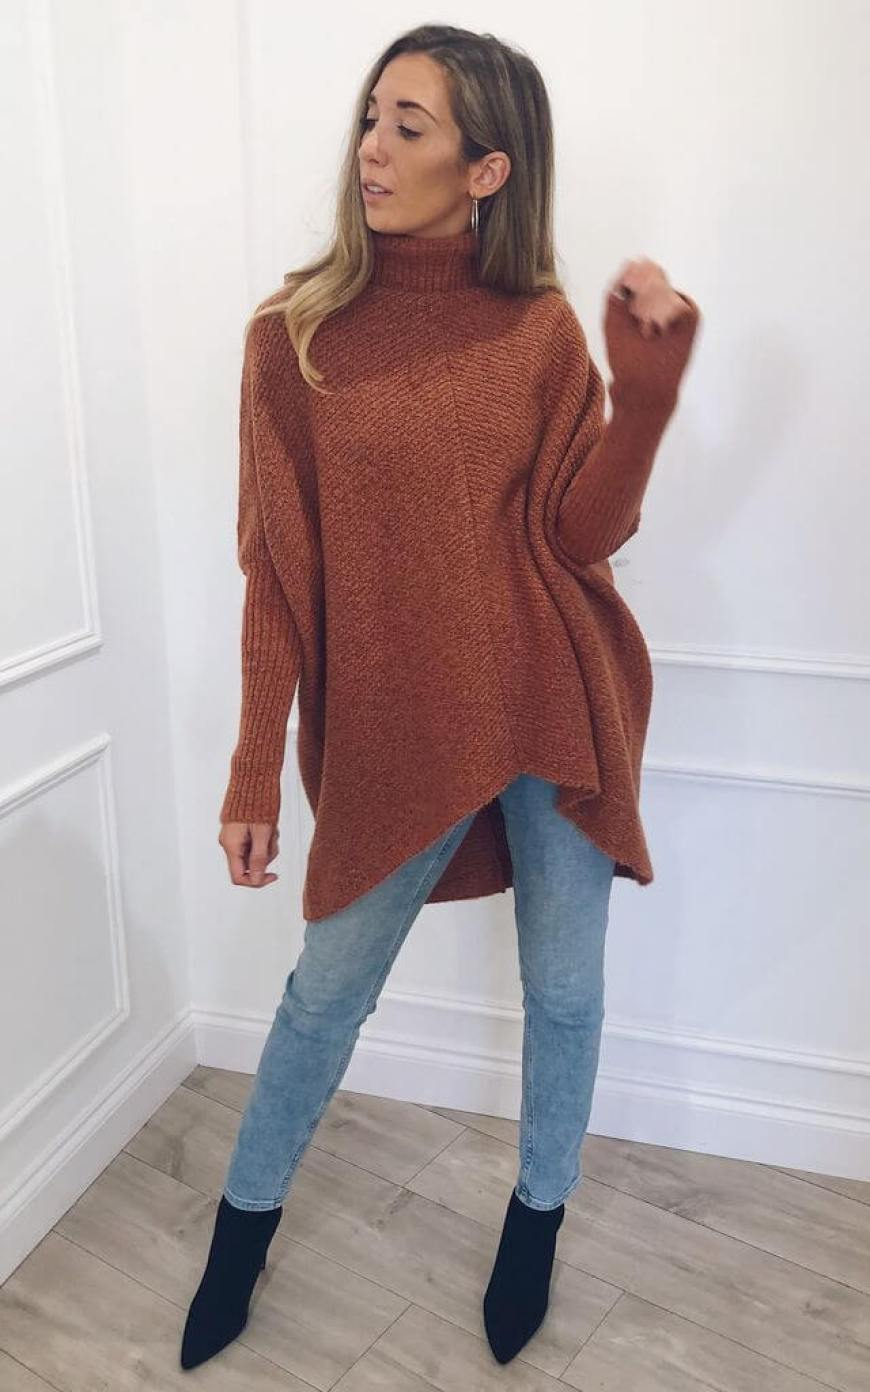 Model wears a brown roll neck jumper with blue jeans and boots